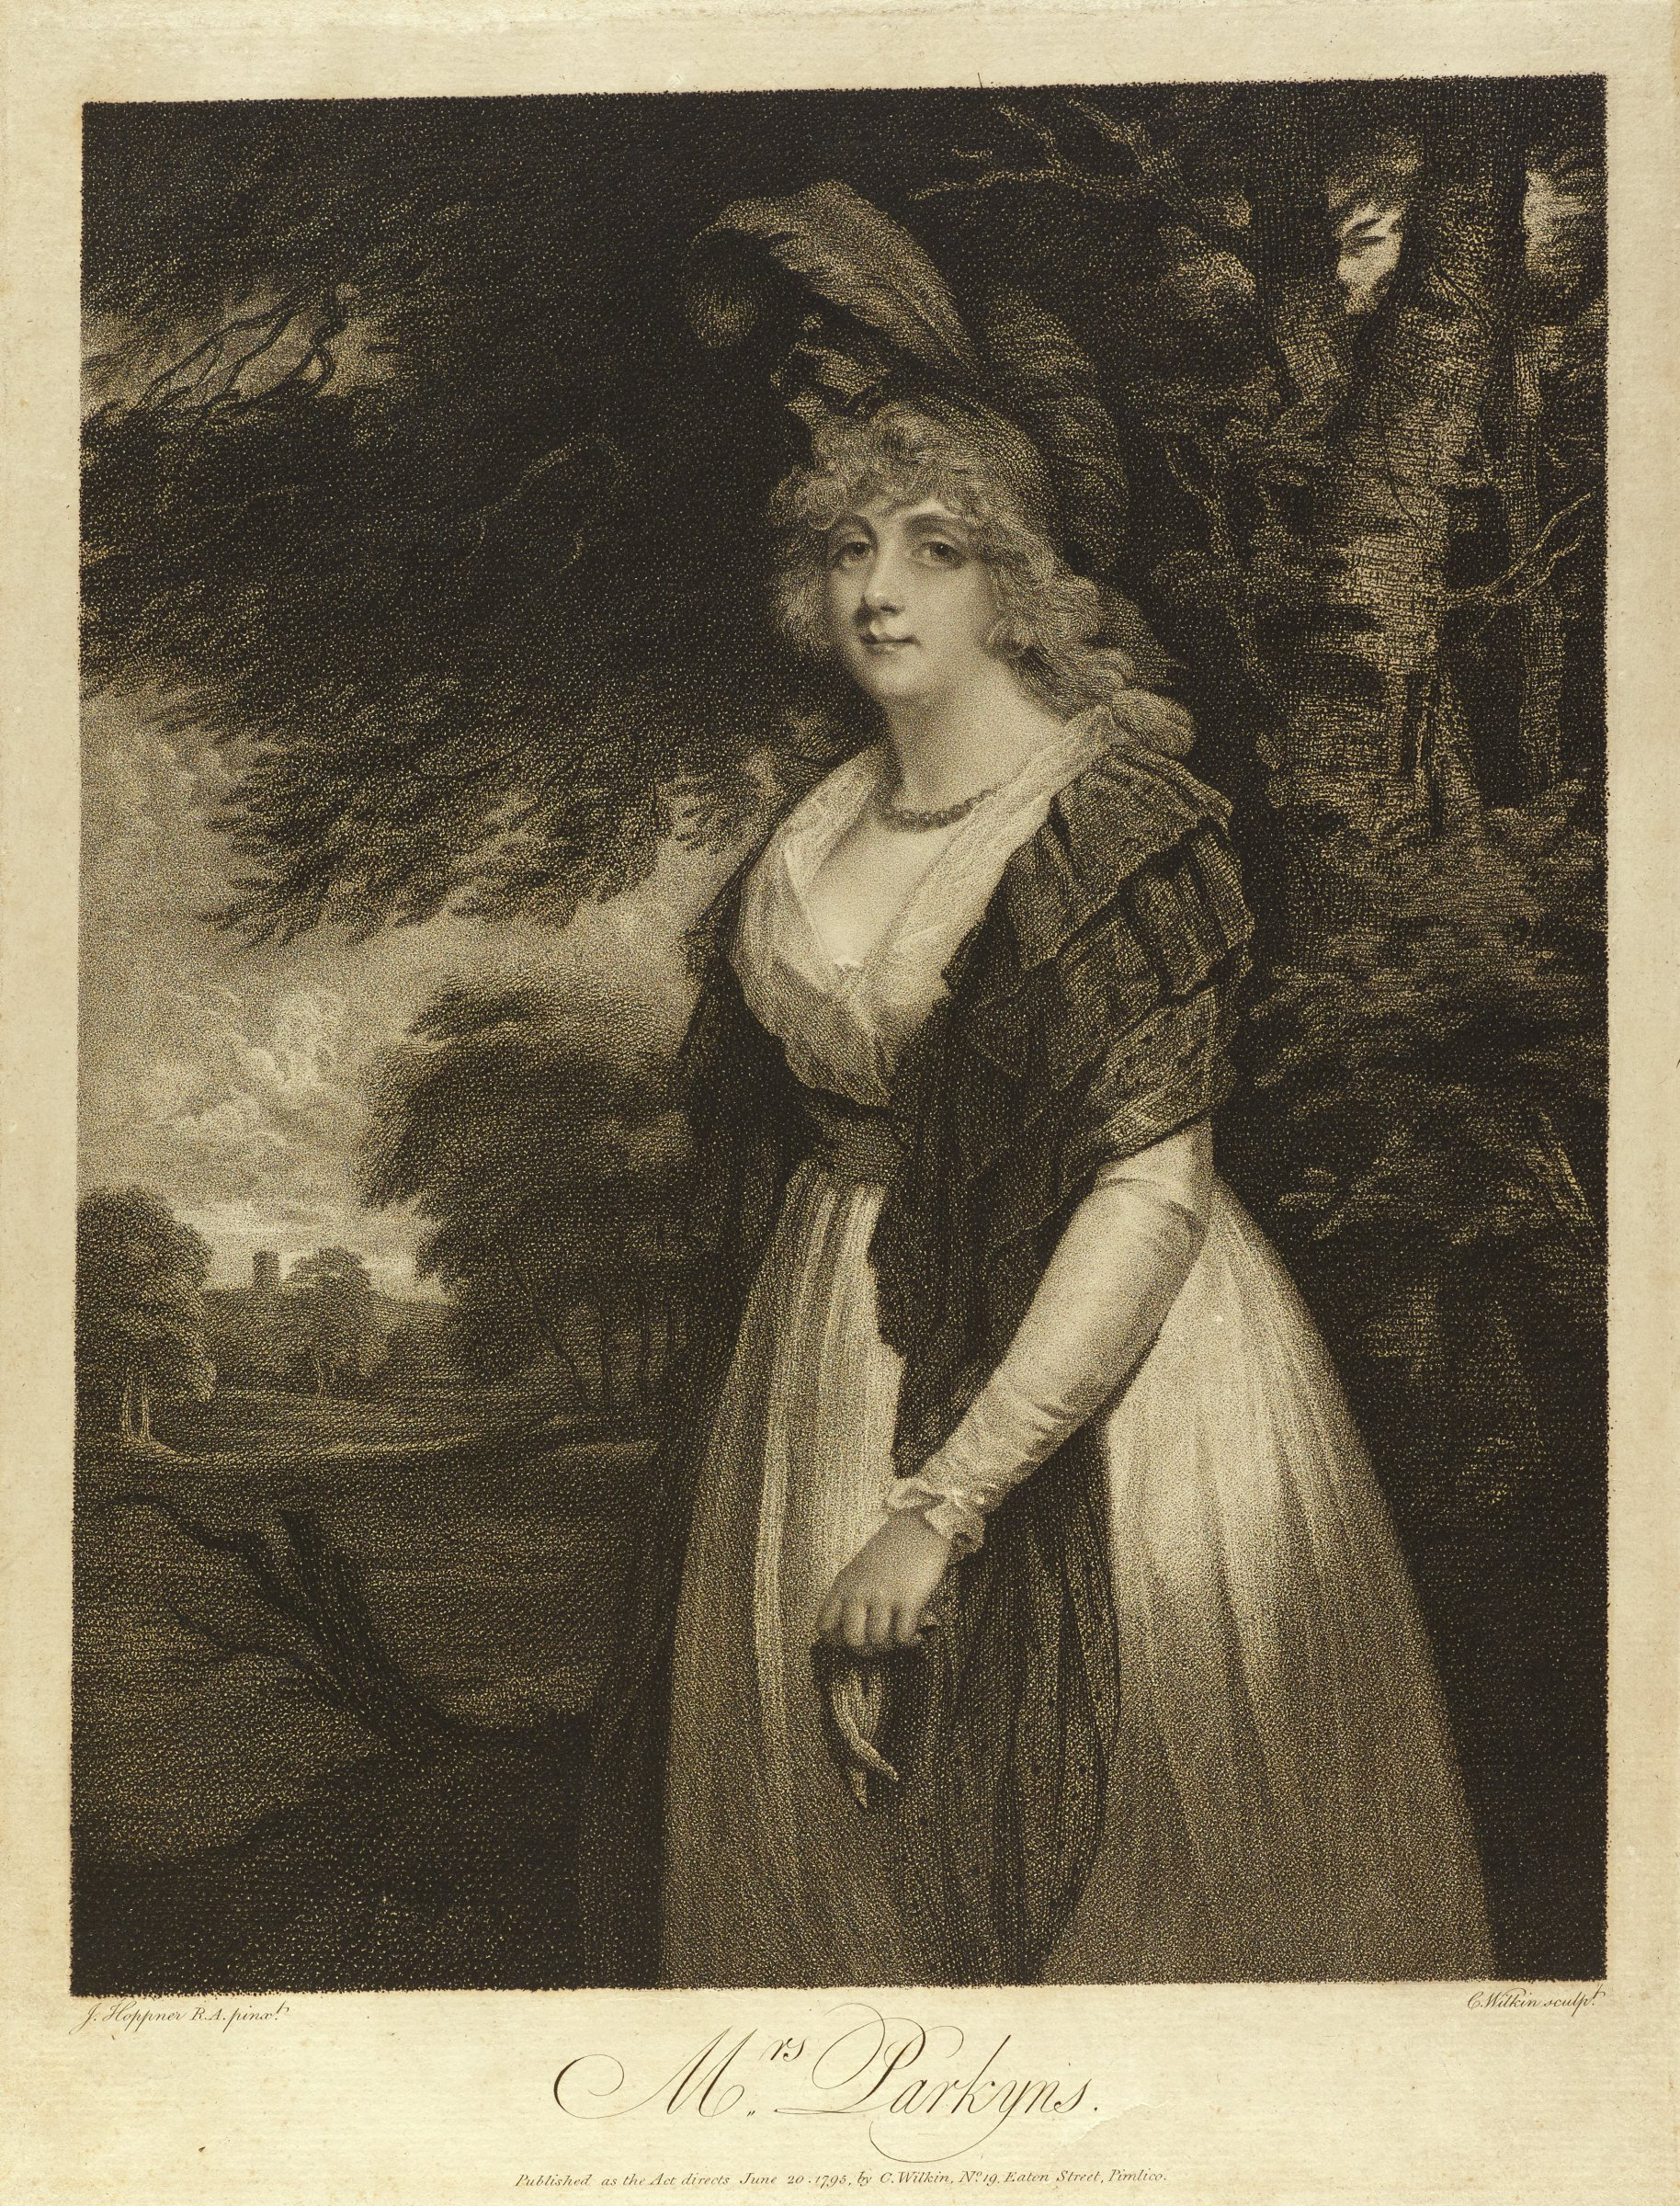 Portrait of Elizabeth Anne Parkyns, almost full-length, wearing a dark shawl and a feathered cap, holding a glove, large trees to the right, landscape vista on the left.